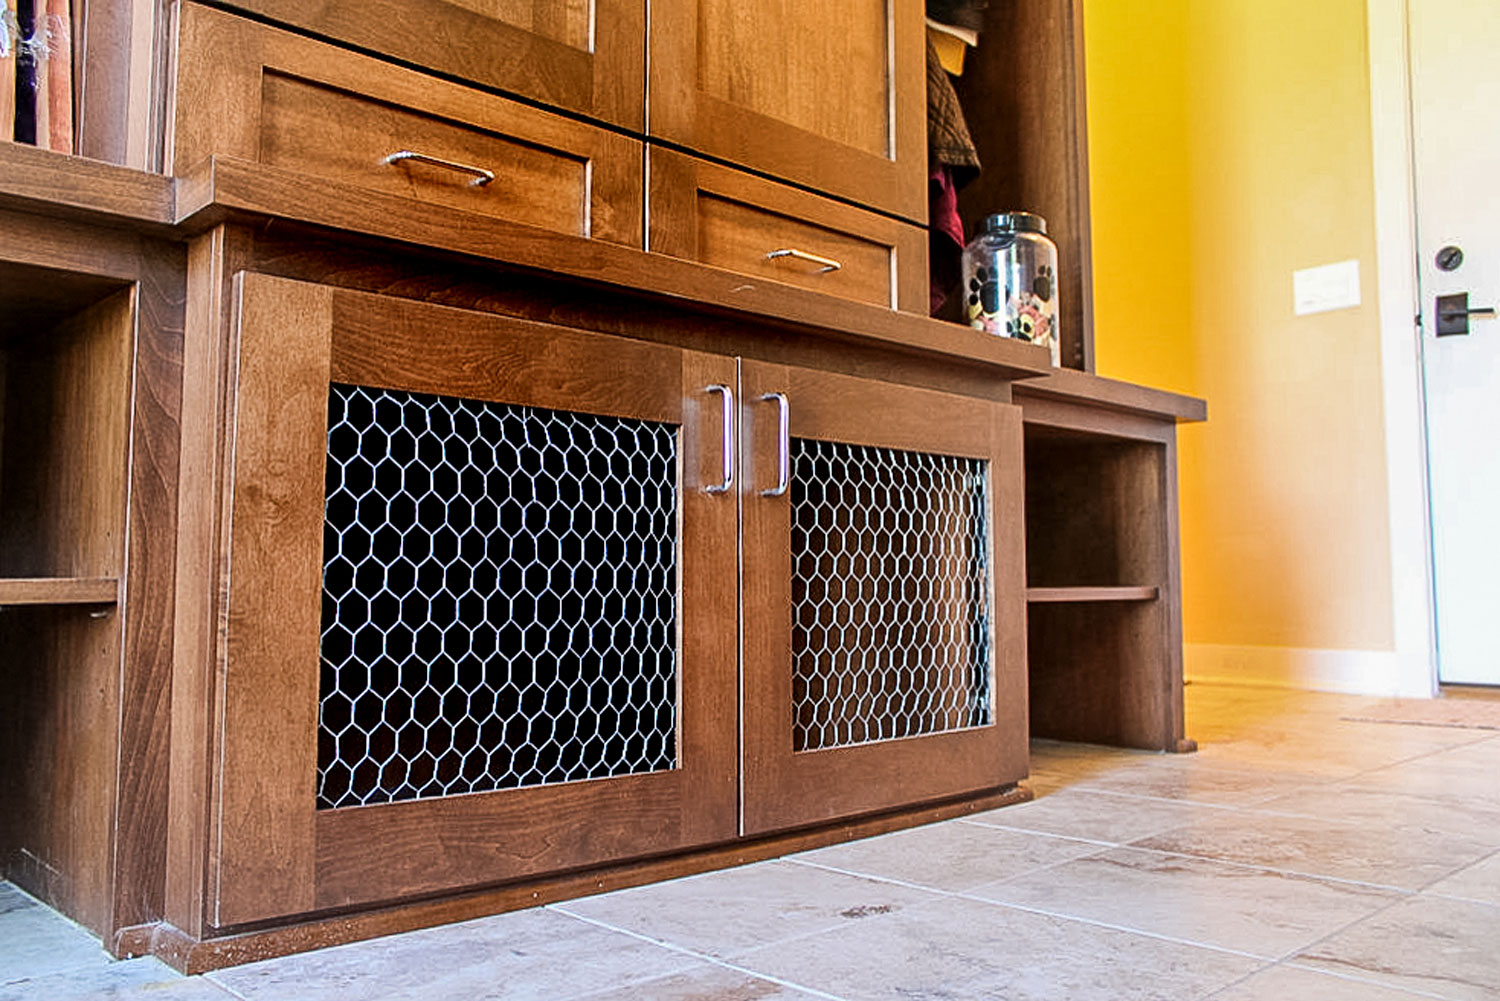 - Ceramic tile flooring is perfect for a mudroom especially if you have radiant heat below. It transfers heat very efficiently.